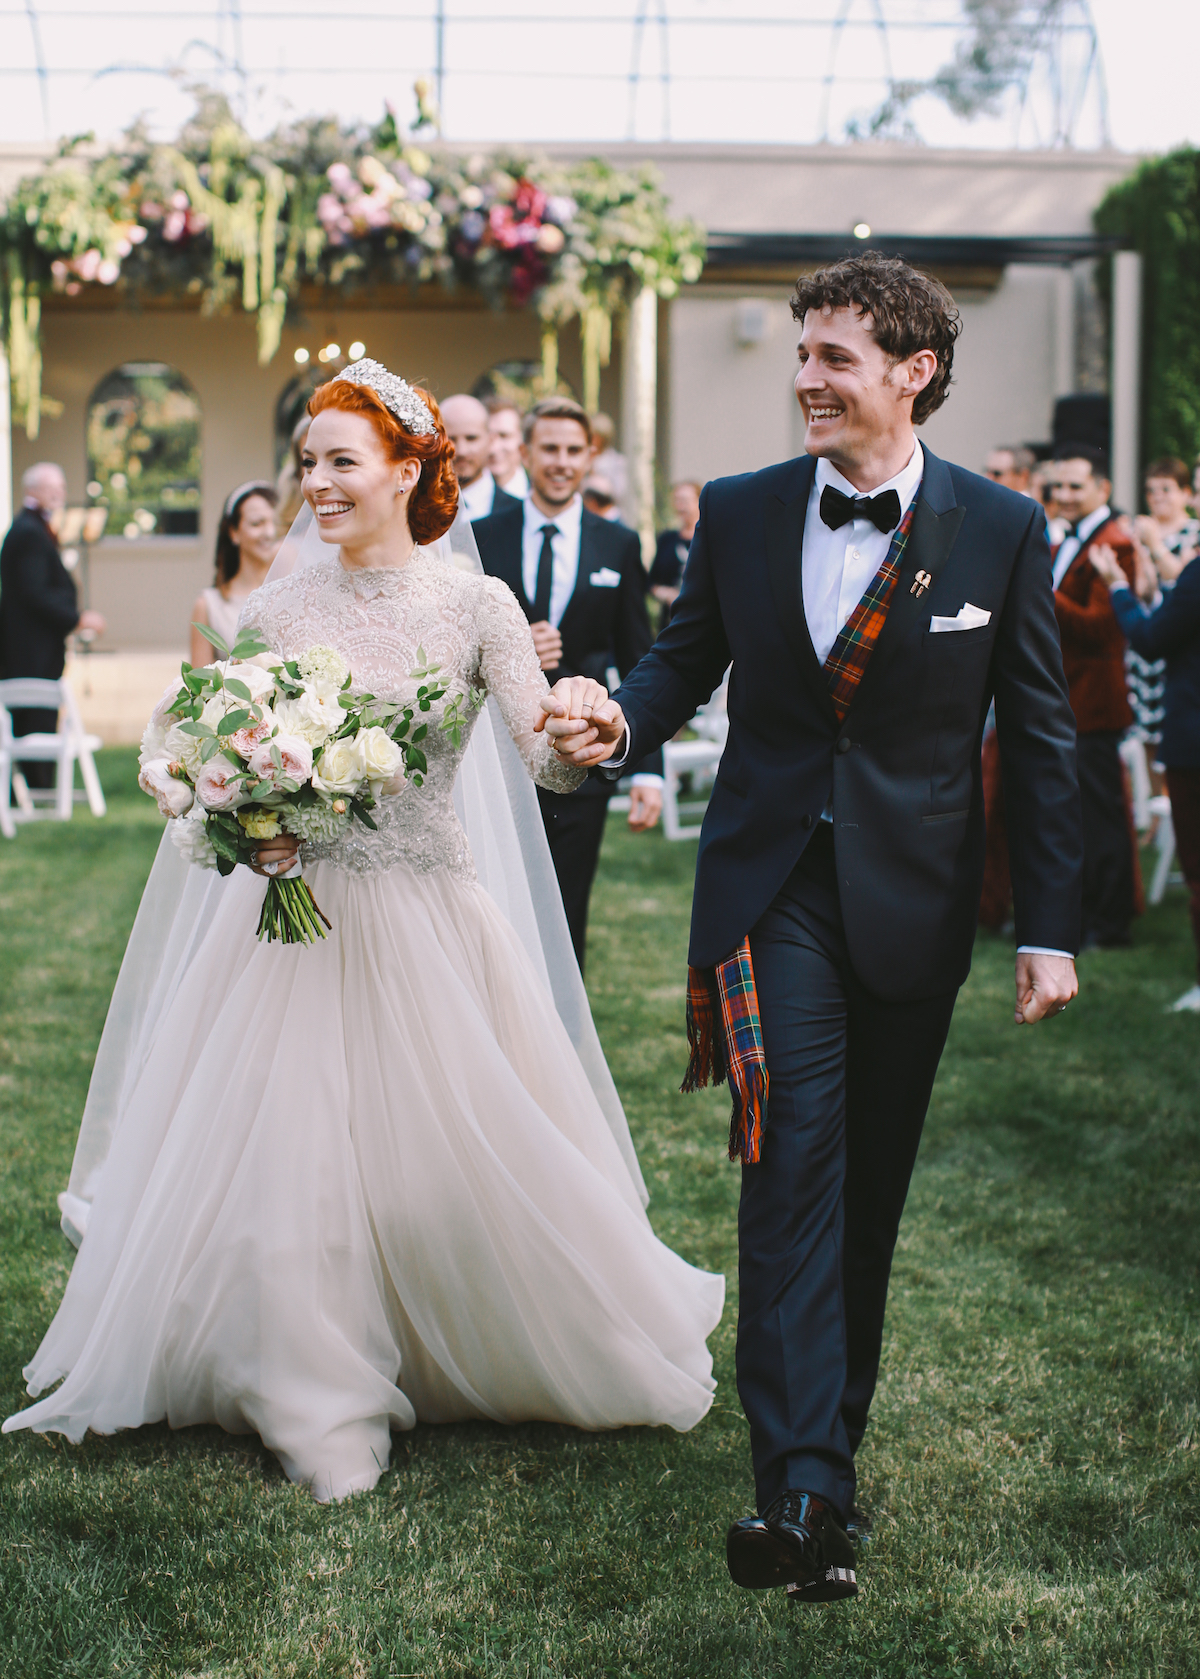 Wiggles Emma Watkins and Lachy Gillespie Marry - Noise11.com